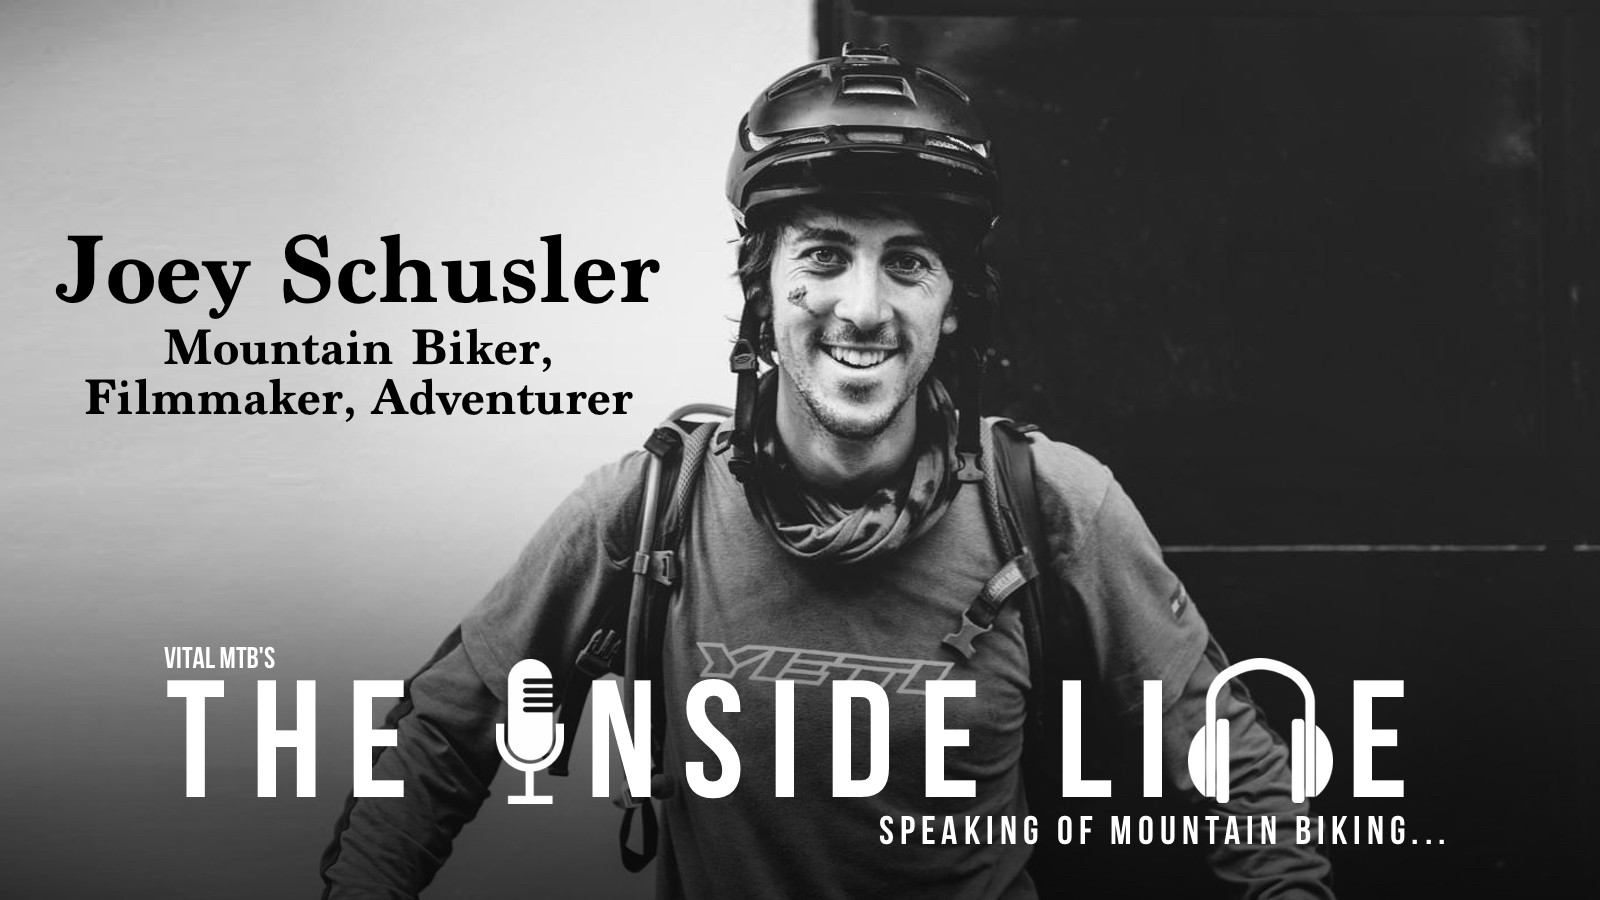 The Inside Line Podcast - Joey Schusler, Mountain Biker, Filmmaker, Adventurer